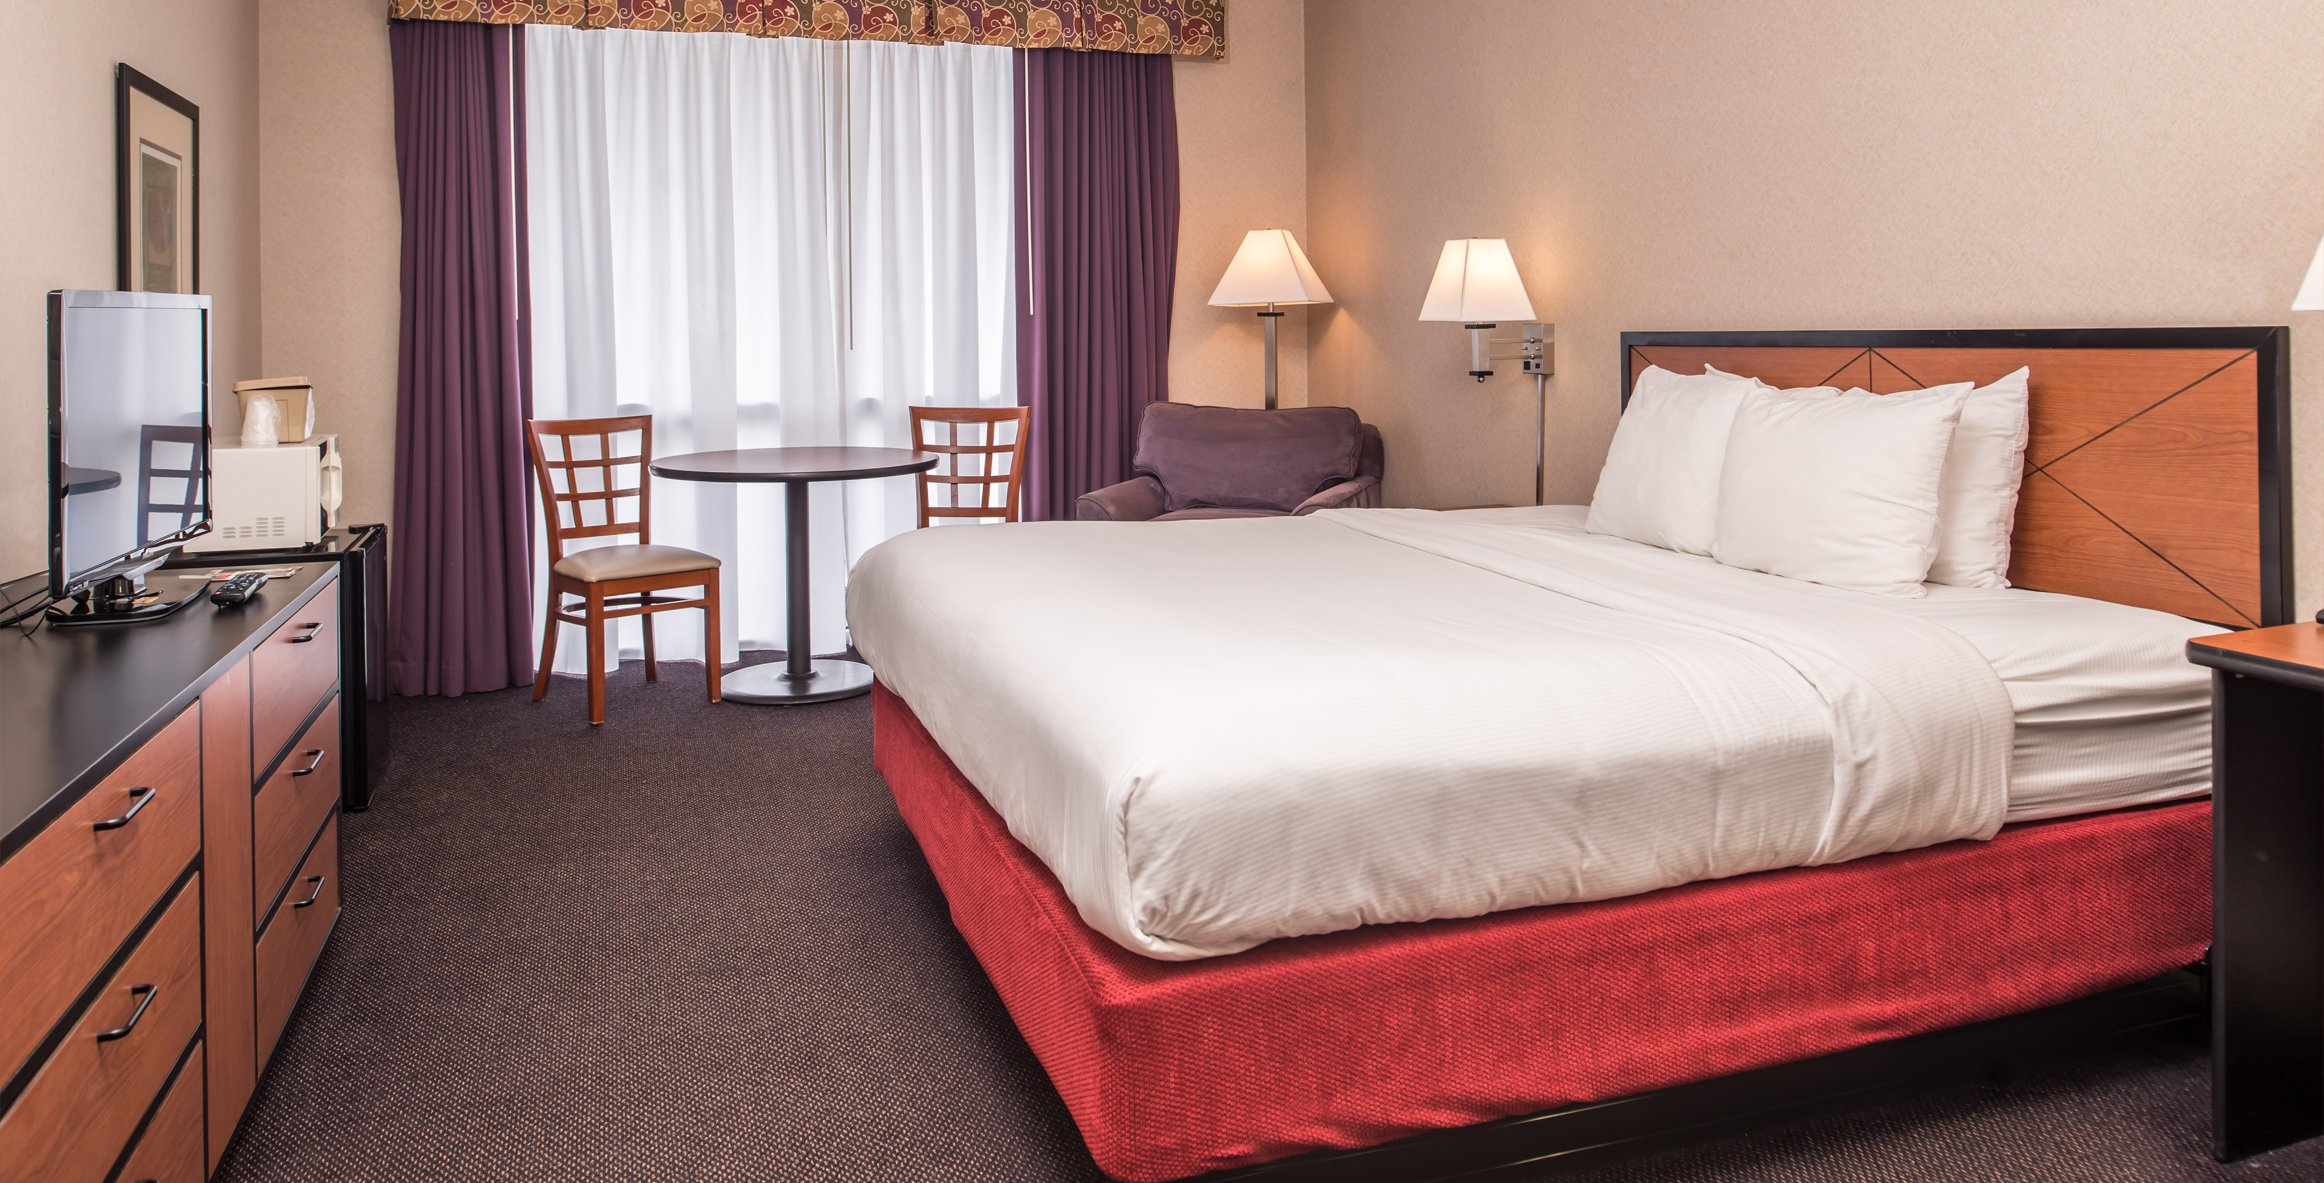 The Hawthorne Inn Is A Perfect Place To Stay Nearby CepEsperu Baptist Medical Center